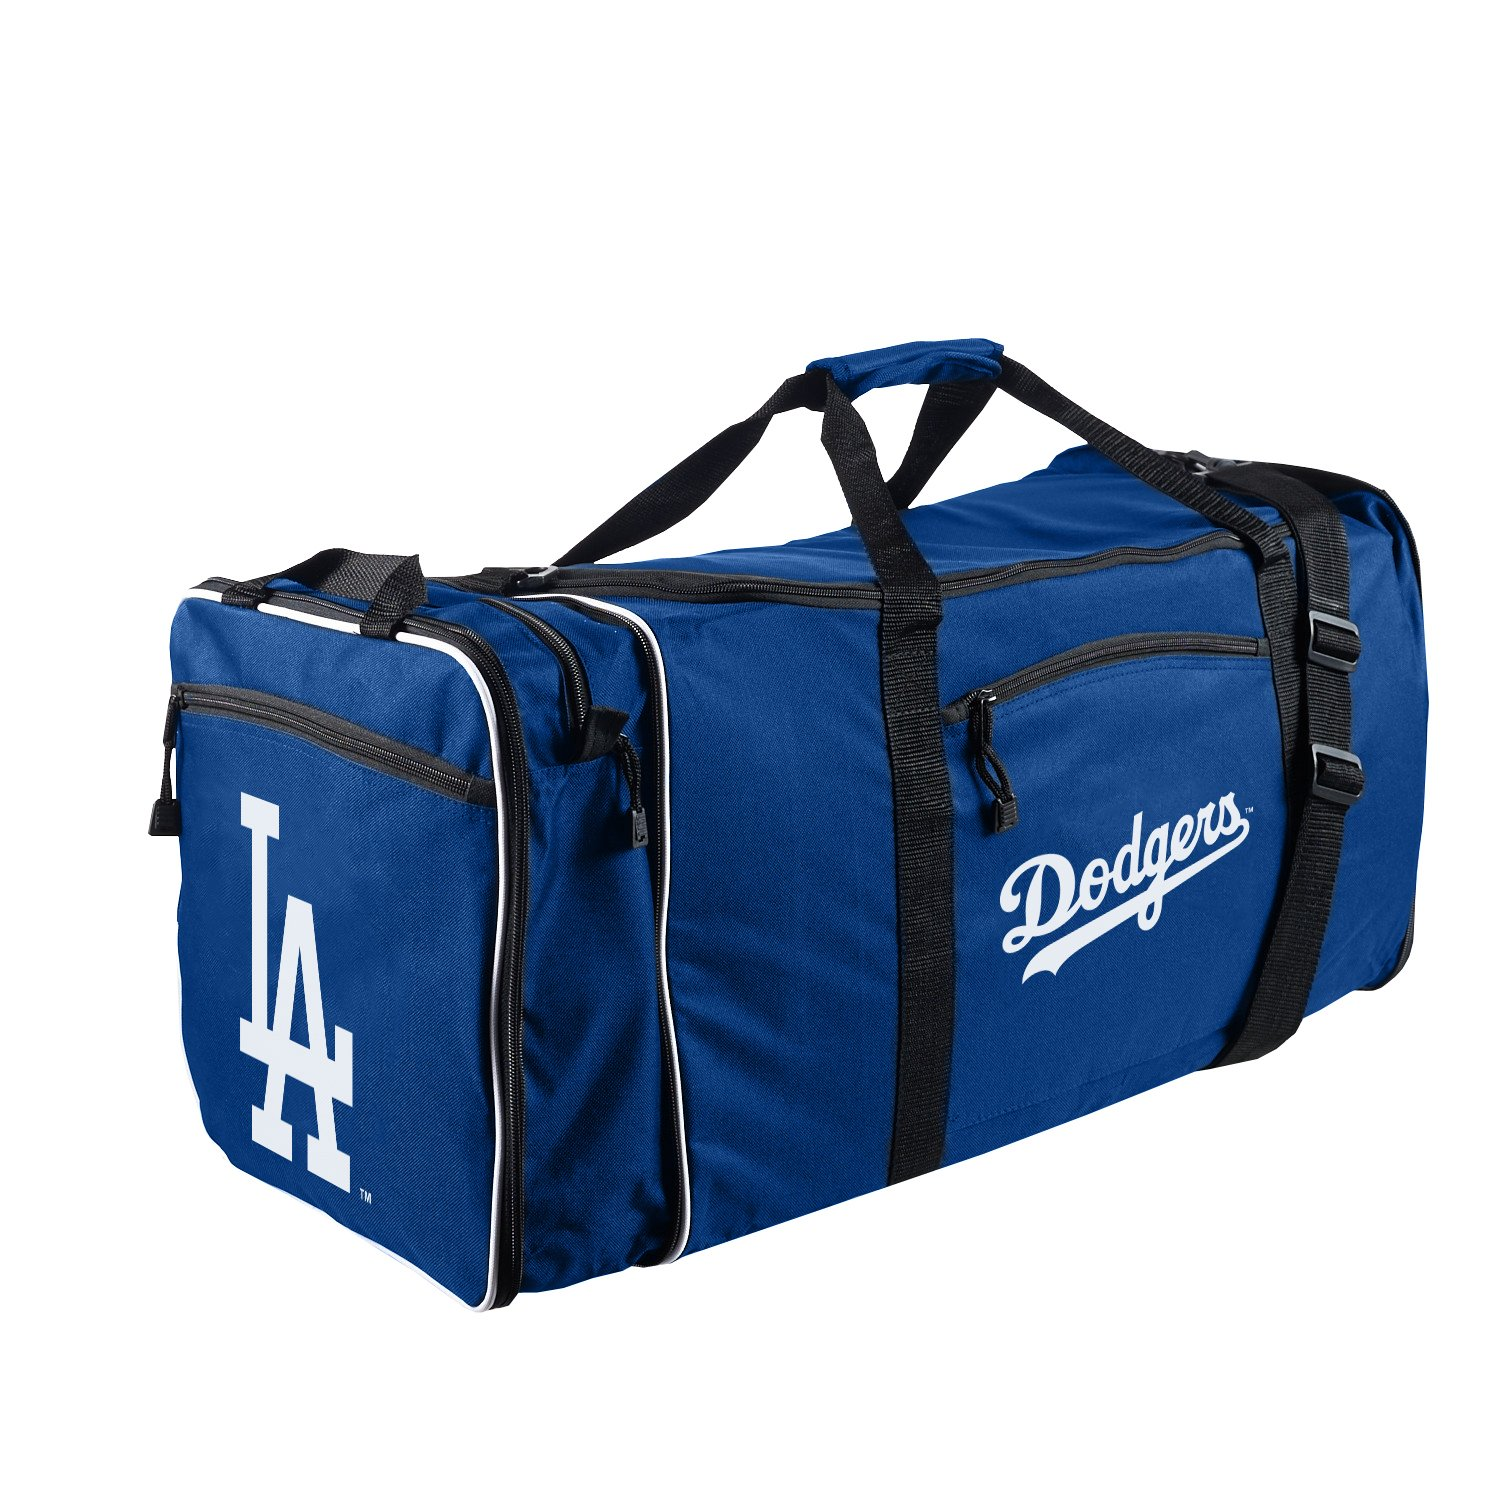 The Northwest Company Officially Licensed MLB Los Angeles Dodgers Steal Duffel bag, 28'' x 11'' x 12''